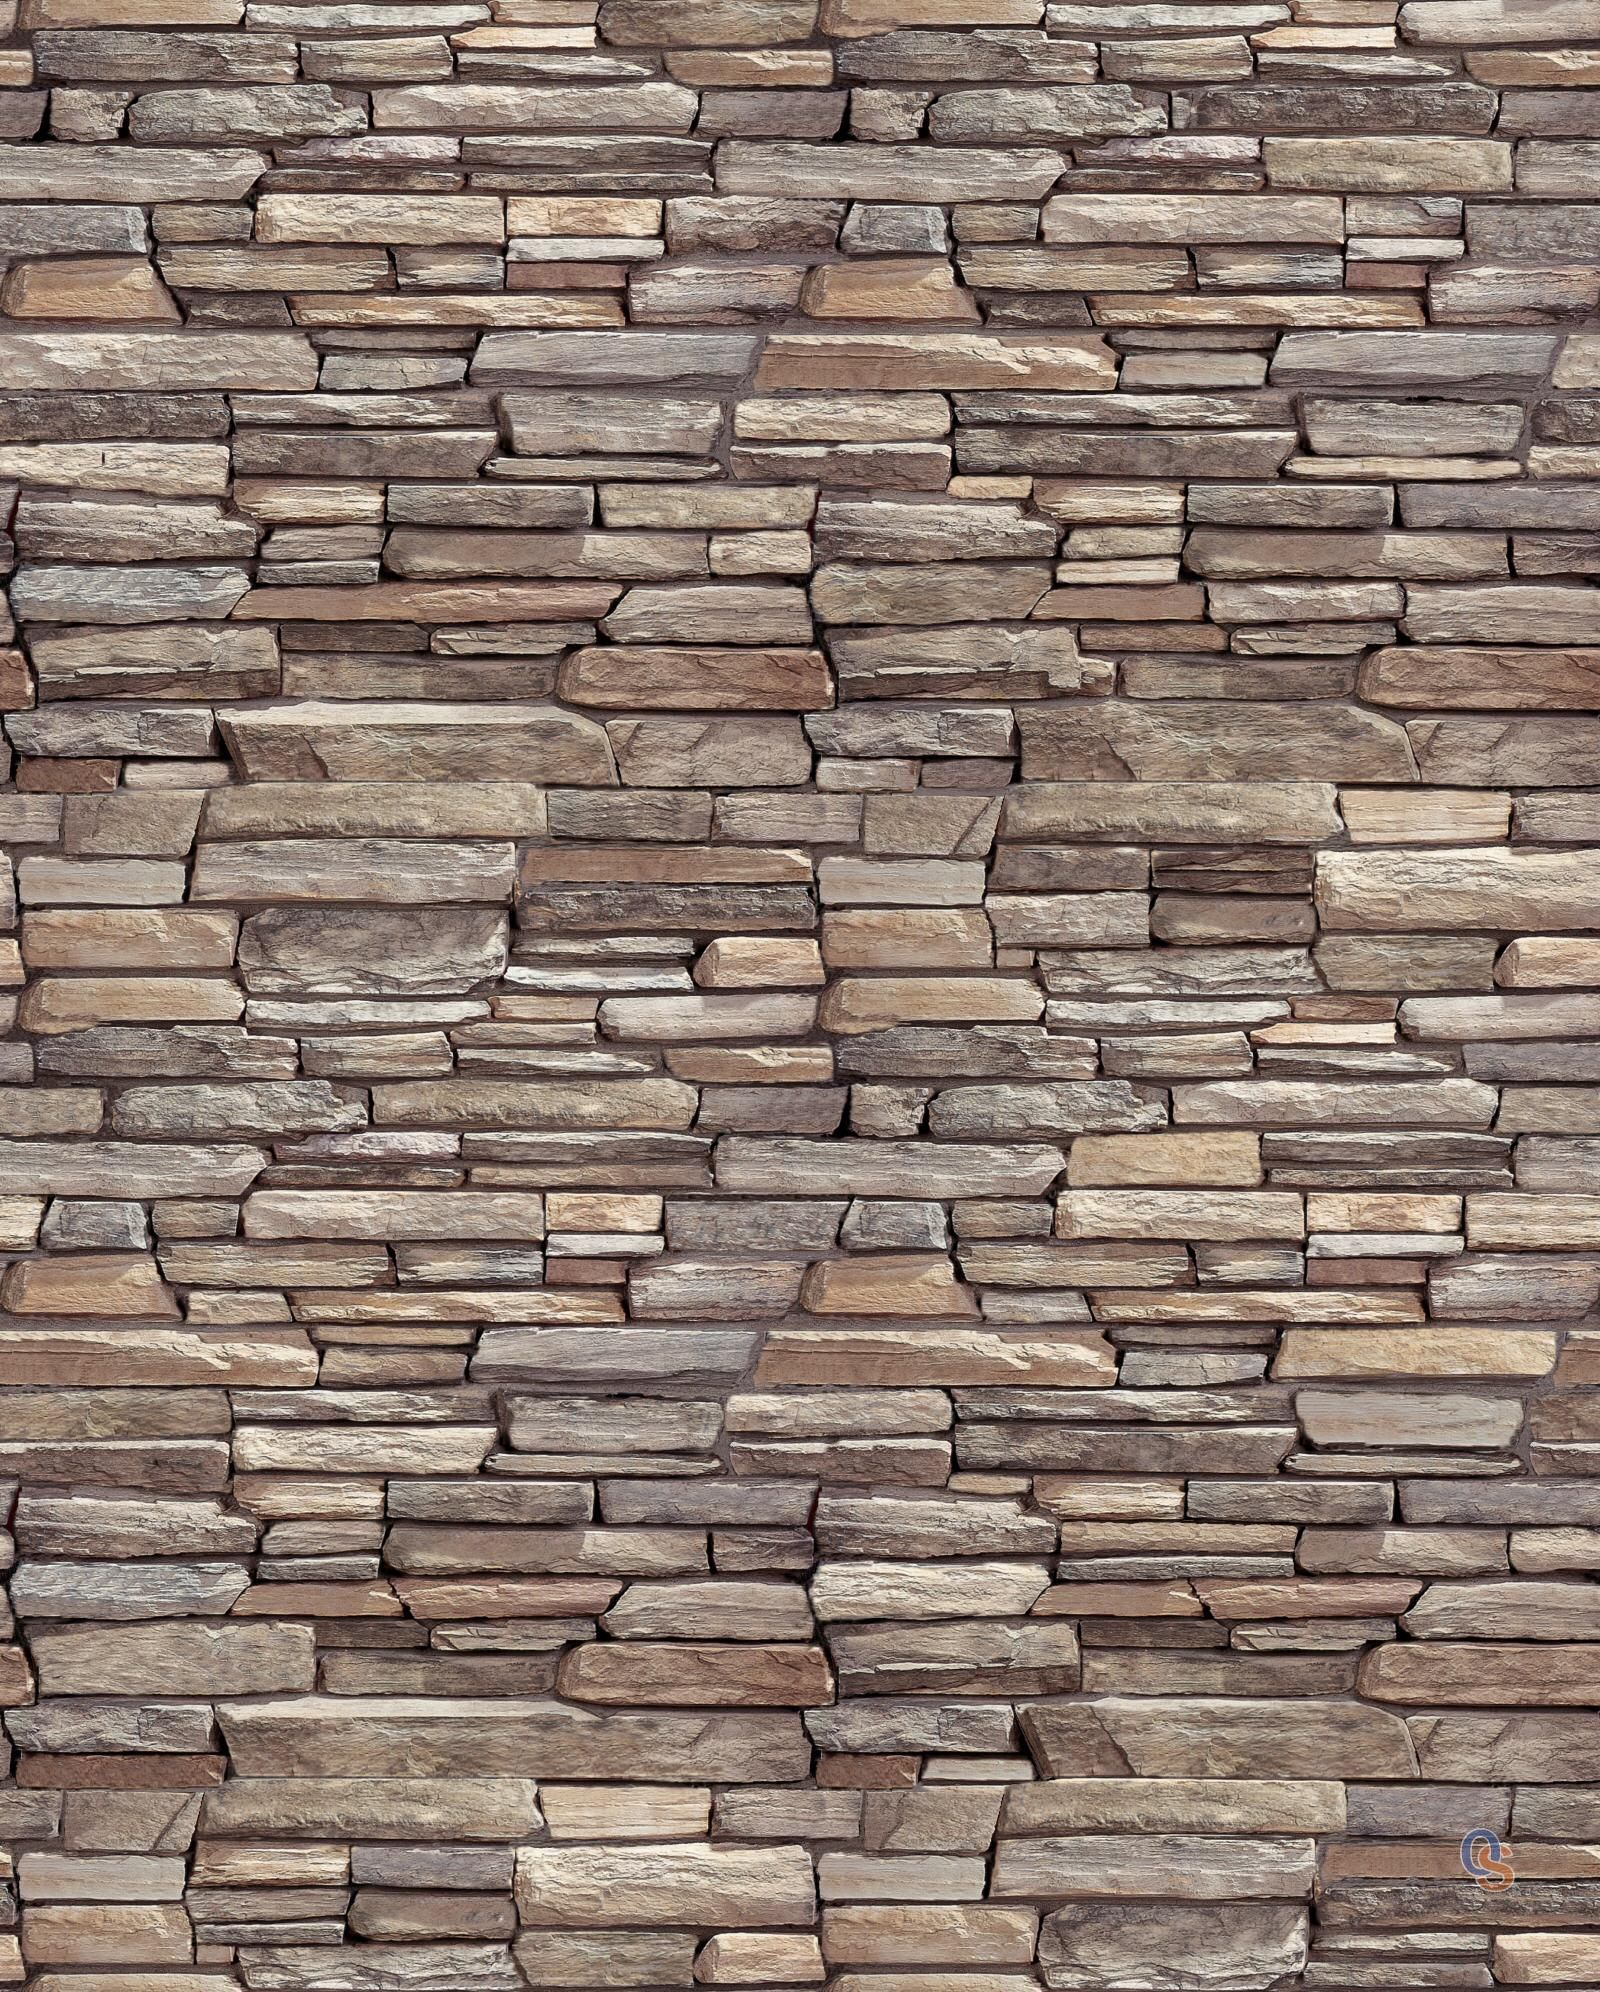 Eldorado S Rustic Ledge Is A Textured And Layered Full Scale Ledge Stone With Long Dimensional Stones Description From Stone Texture Stone Wall Eldorado Stone